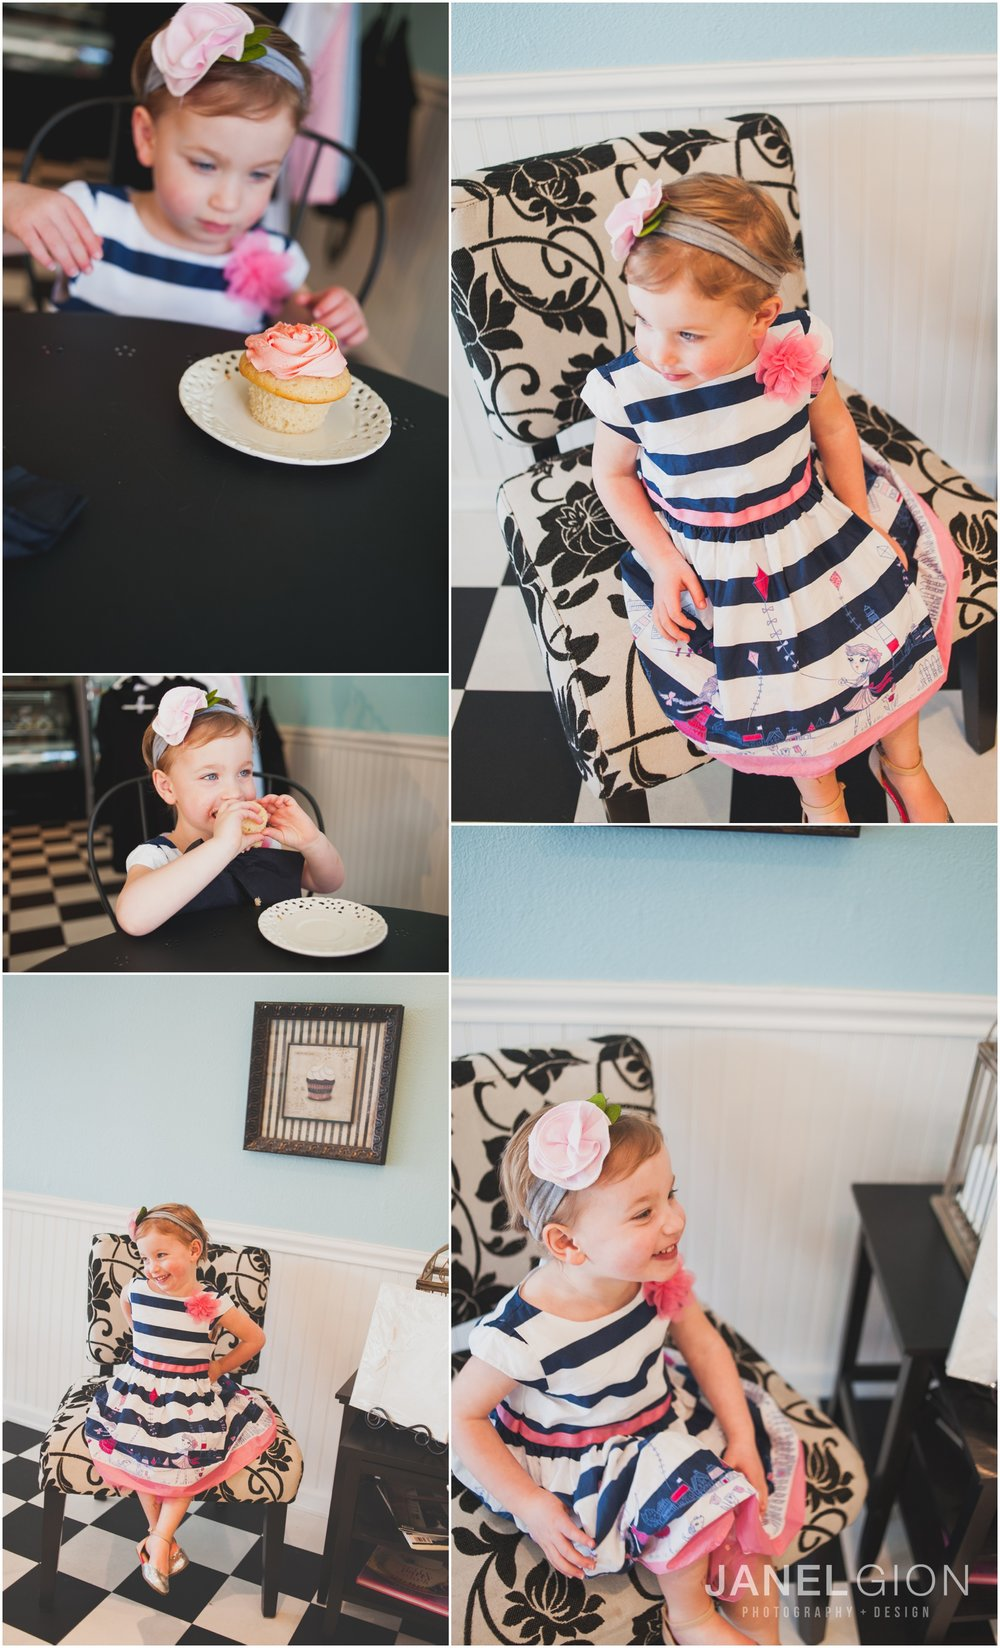 Child-Photographer-Cupcakes-and-Puddles